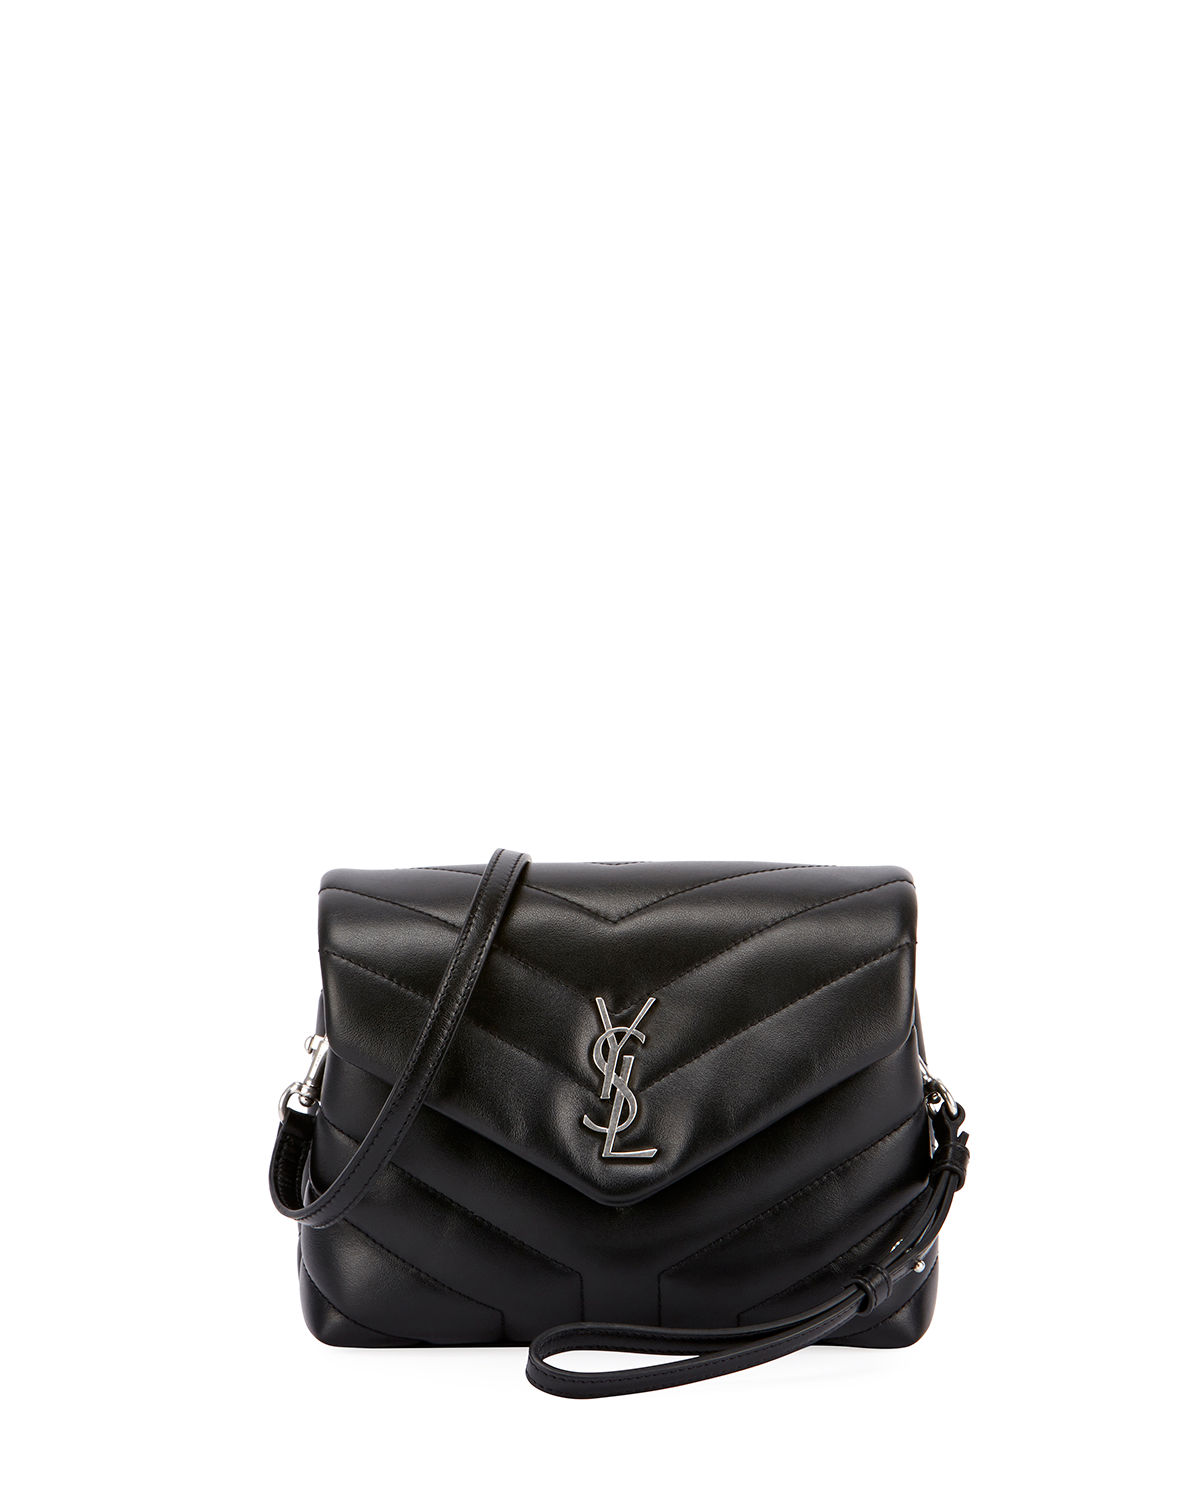 60a16ea56c15 Saint LaurentLoulou Monogram YSL Mini V-Flap Calf Leather Crossbody Bag -  Nickel Oxide Hardware